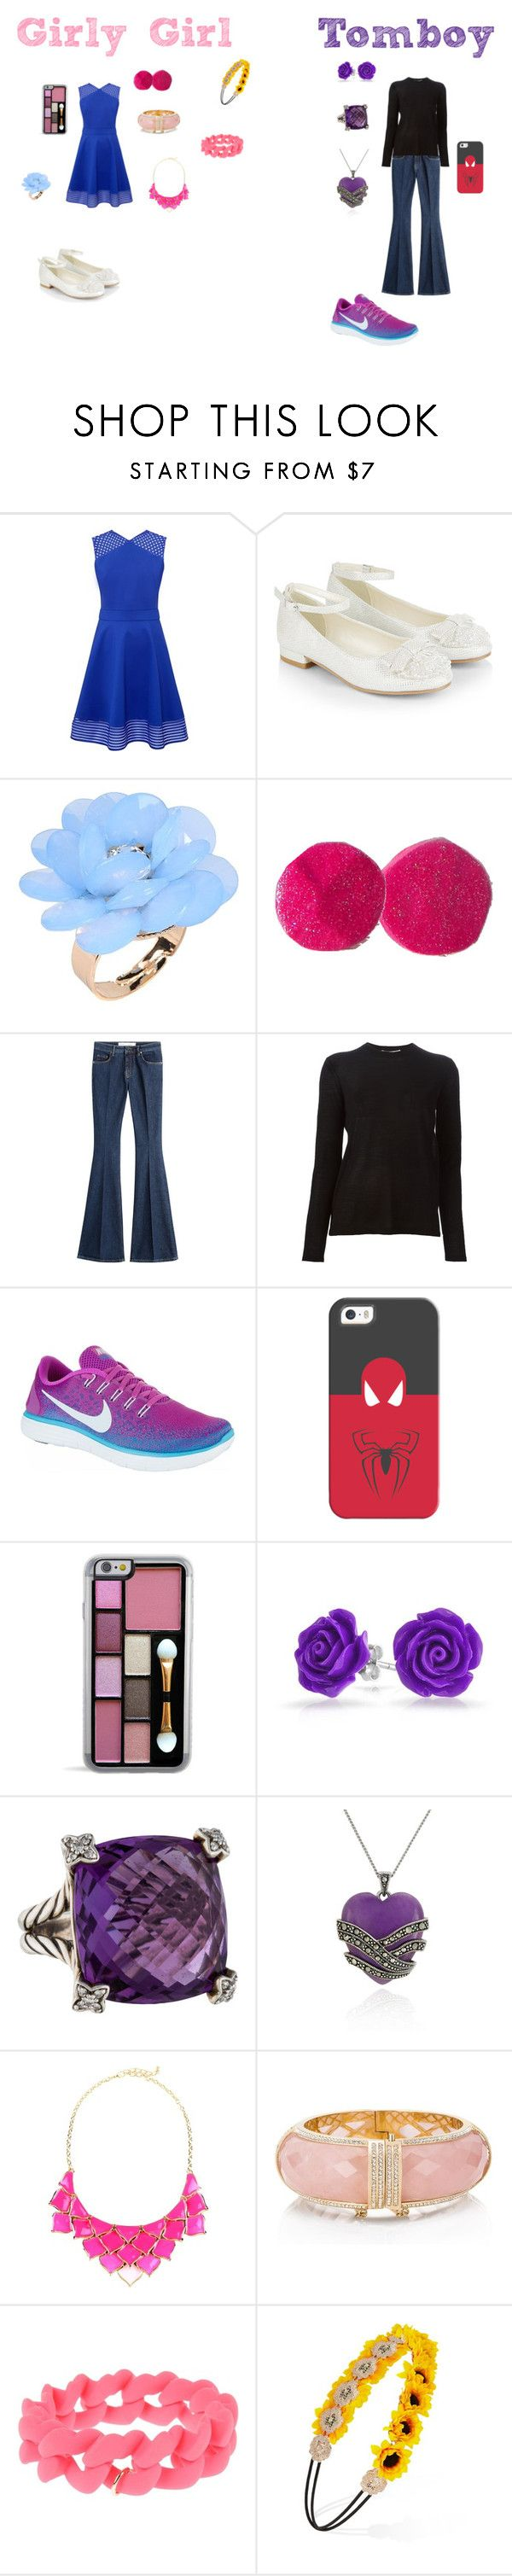 """""""Grily Girl vs. Tomboy: House Party Outfits"""" by sierra-ivy on Polyvore featuring Ted Baker, Monsoon, Dettagli, dVb Victoria Beckham, Alexander Wang, NIKE, Casetify, Bling Jewelry, David Yurman and Belk & Co."""